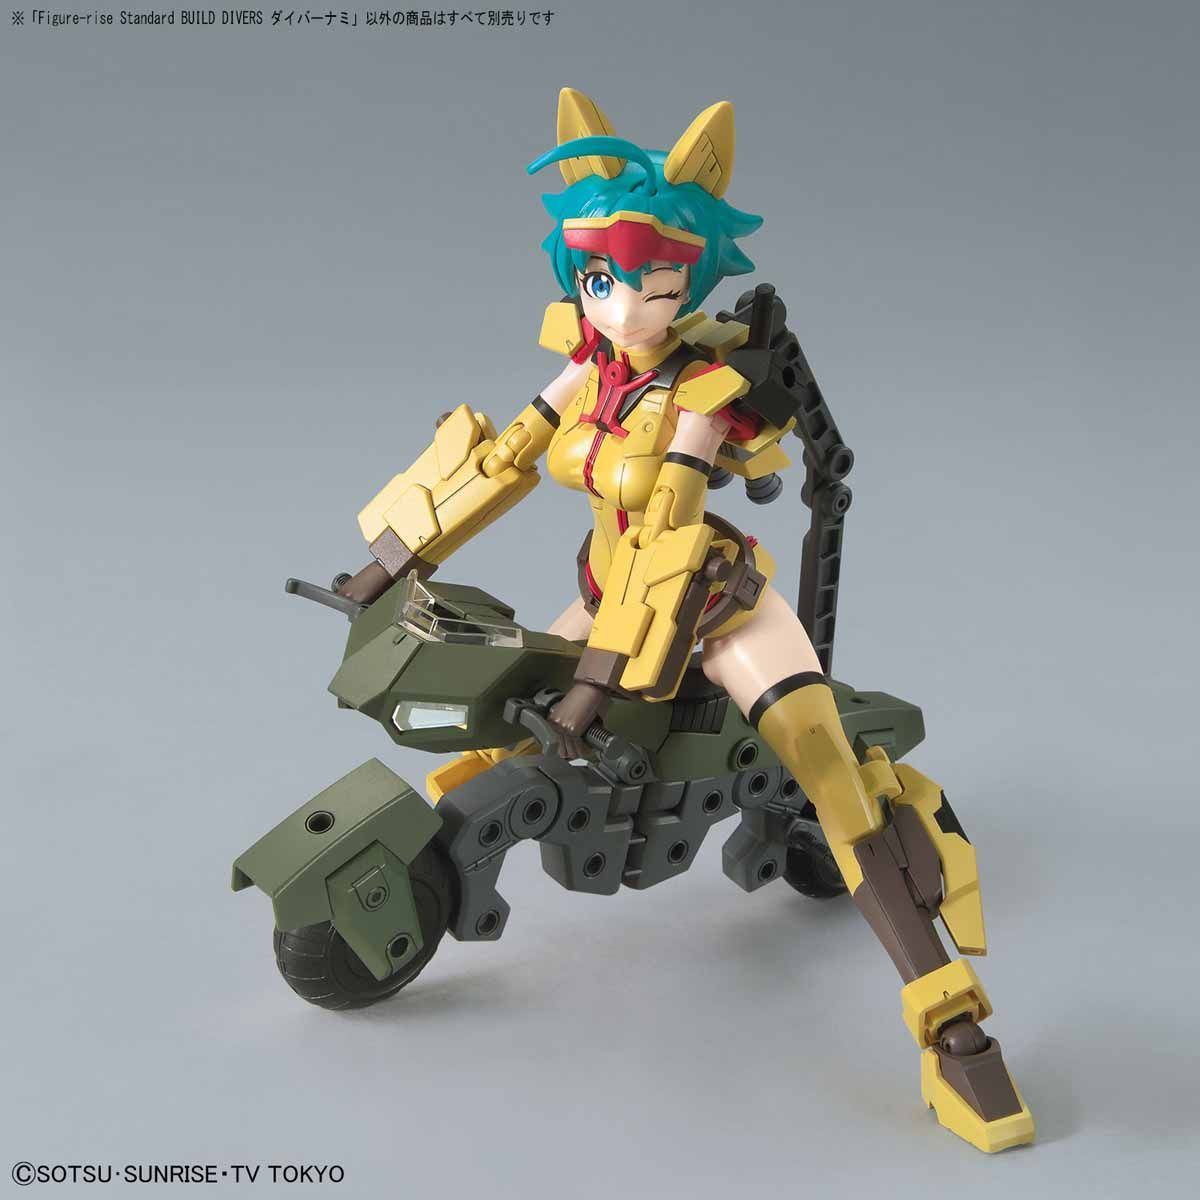 Figure-rise Standard BUILD DIVERS ダイバーナミ 11